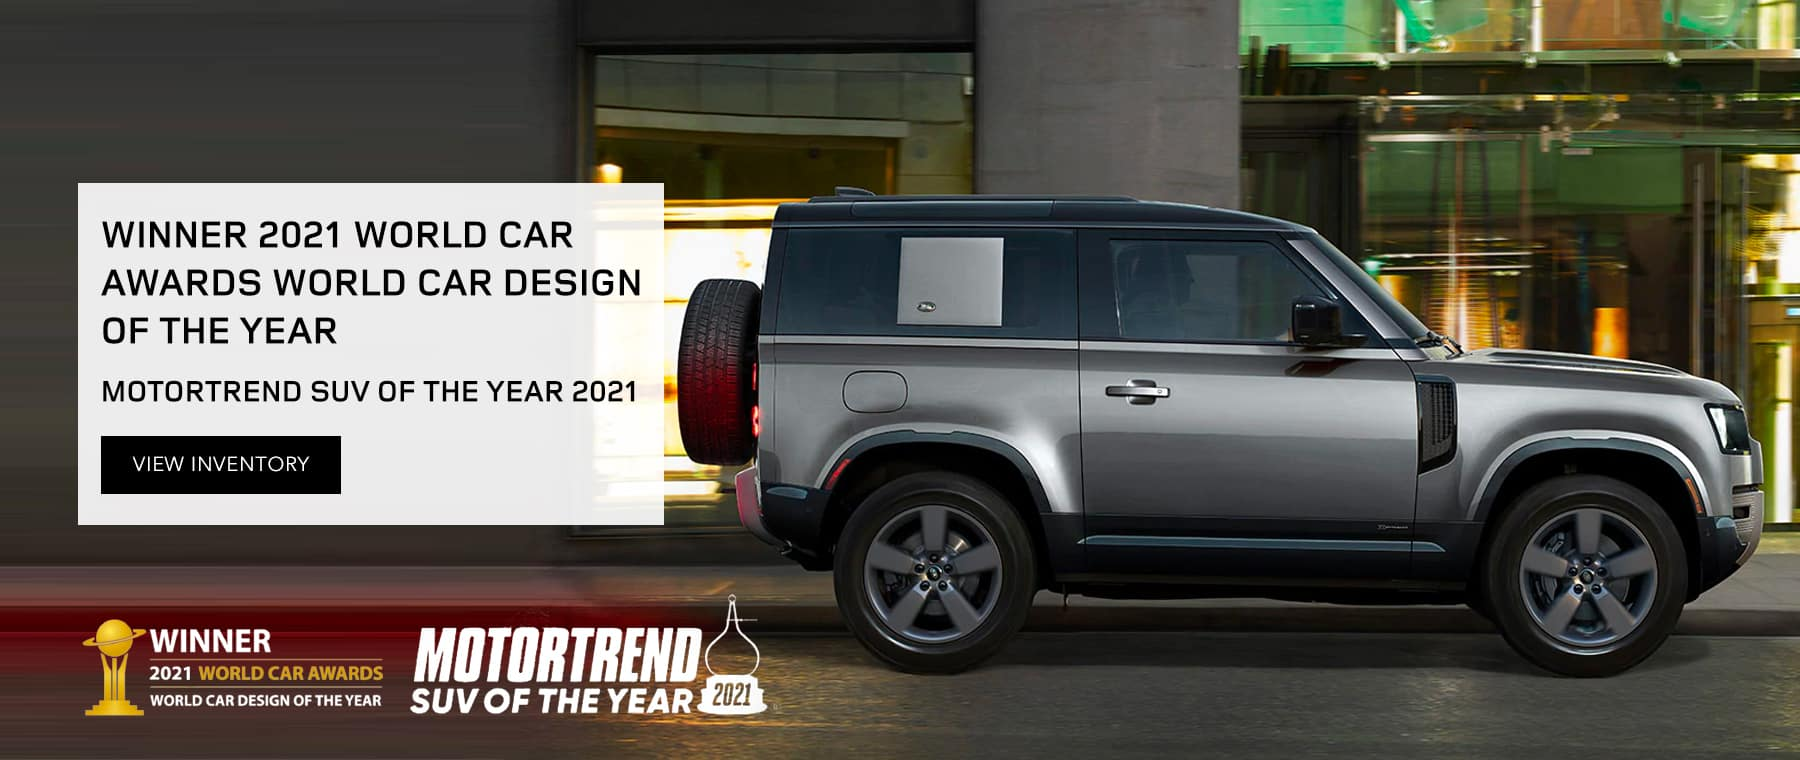 Winner 2021 World Car Awards World Car Design of the Year, Motortrend SUV of the Year 2021